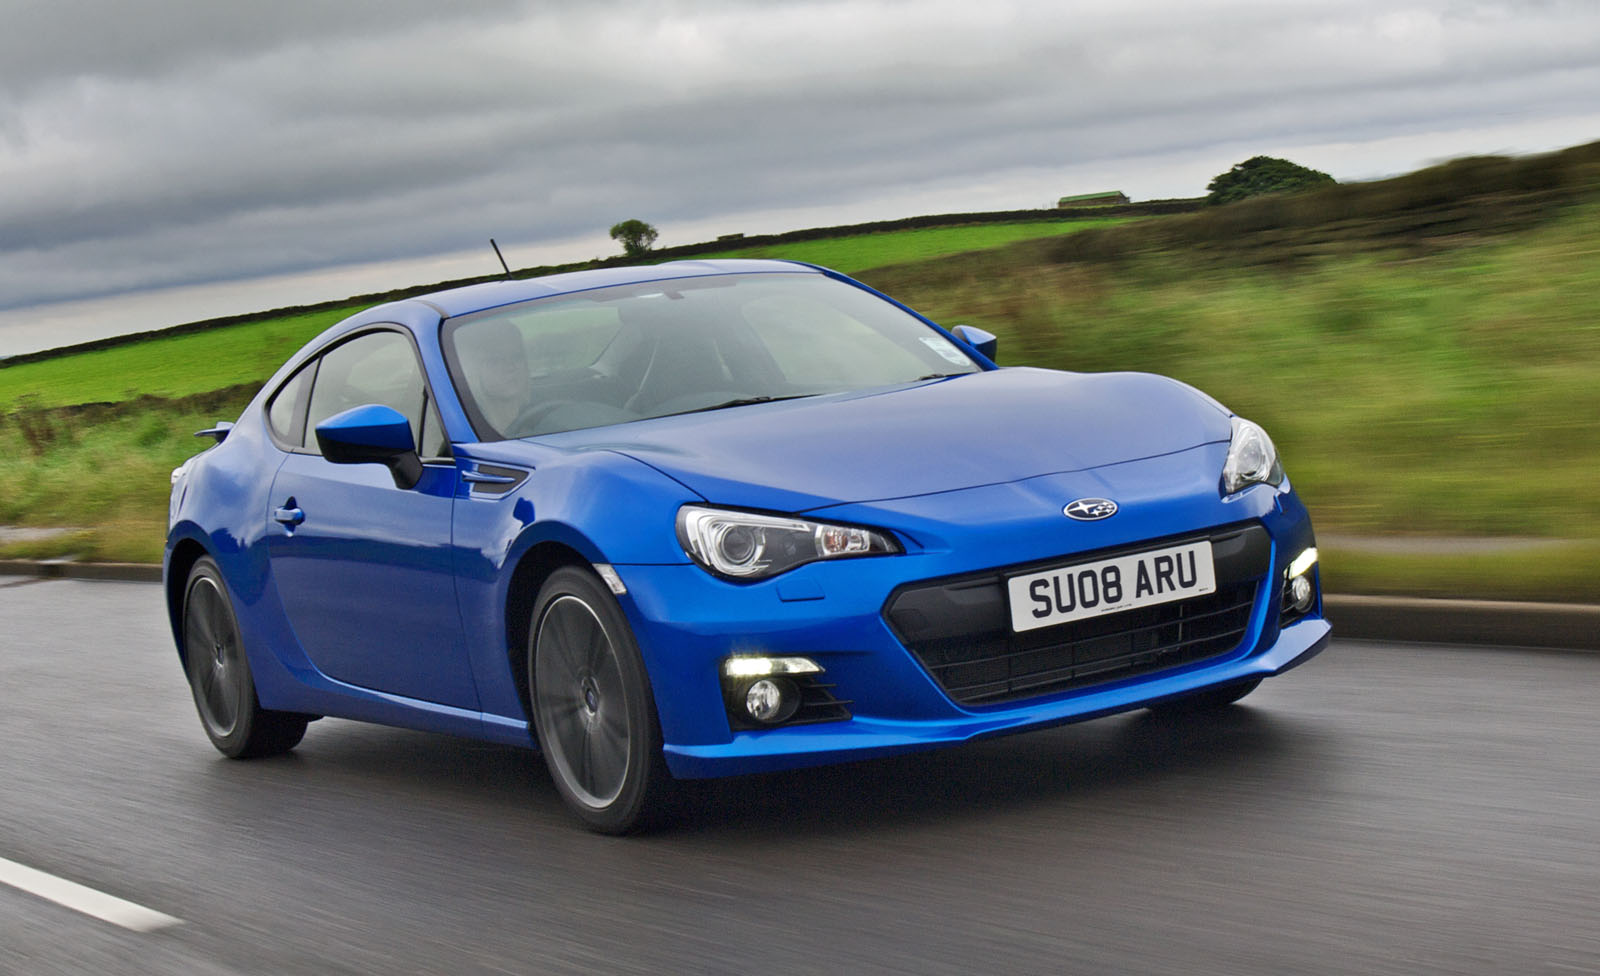 subaru brz convertible awd twin turbo diesel hybrid confirmed for 2015. Black Bedroom Furniture Sets. Home Design Ideas